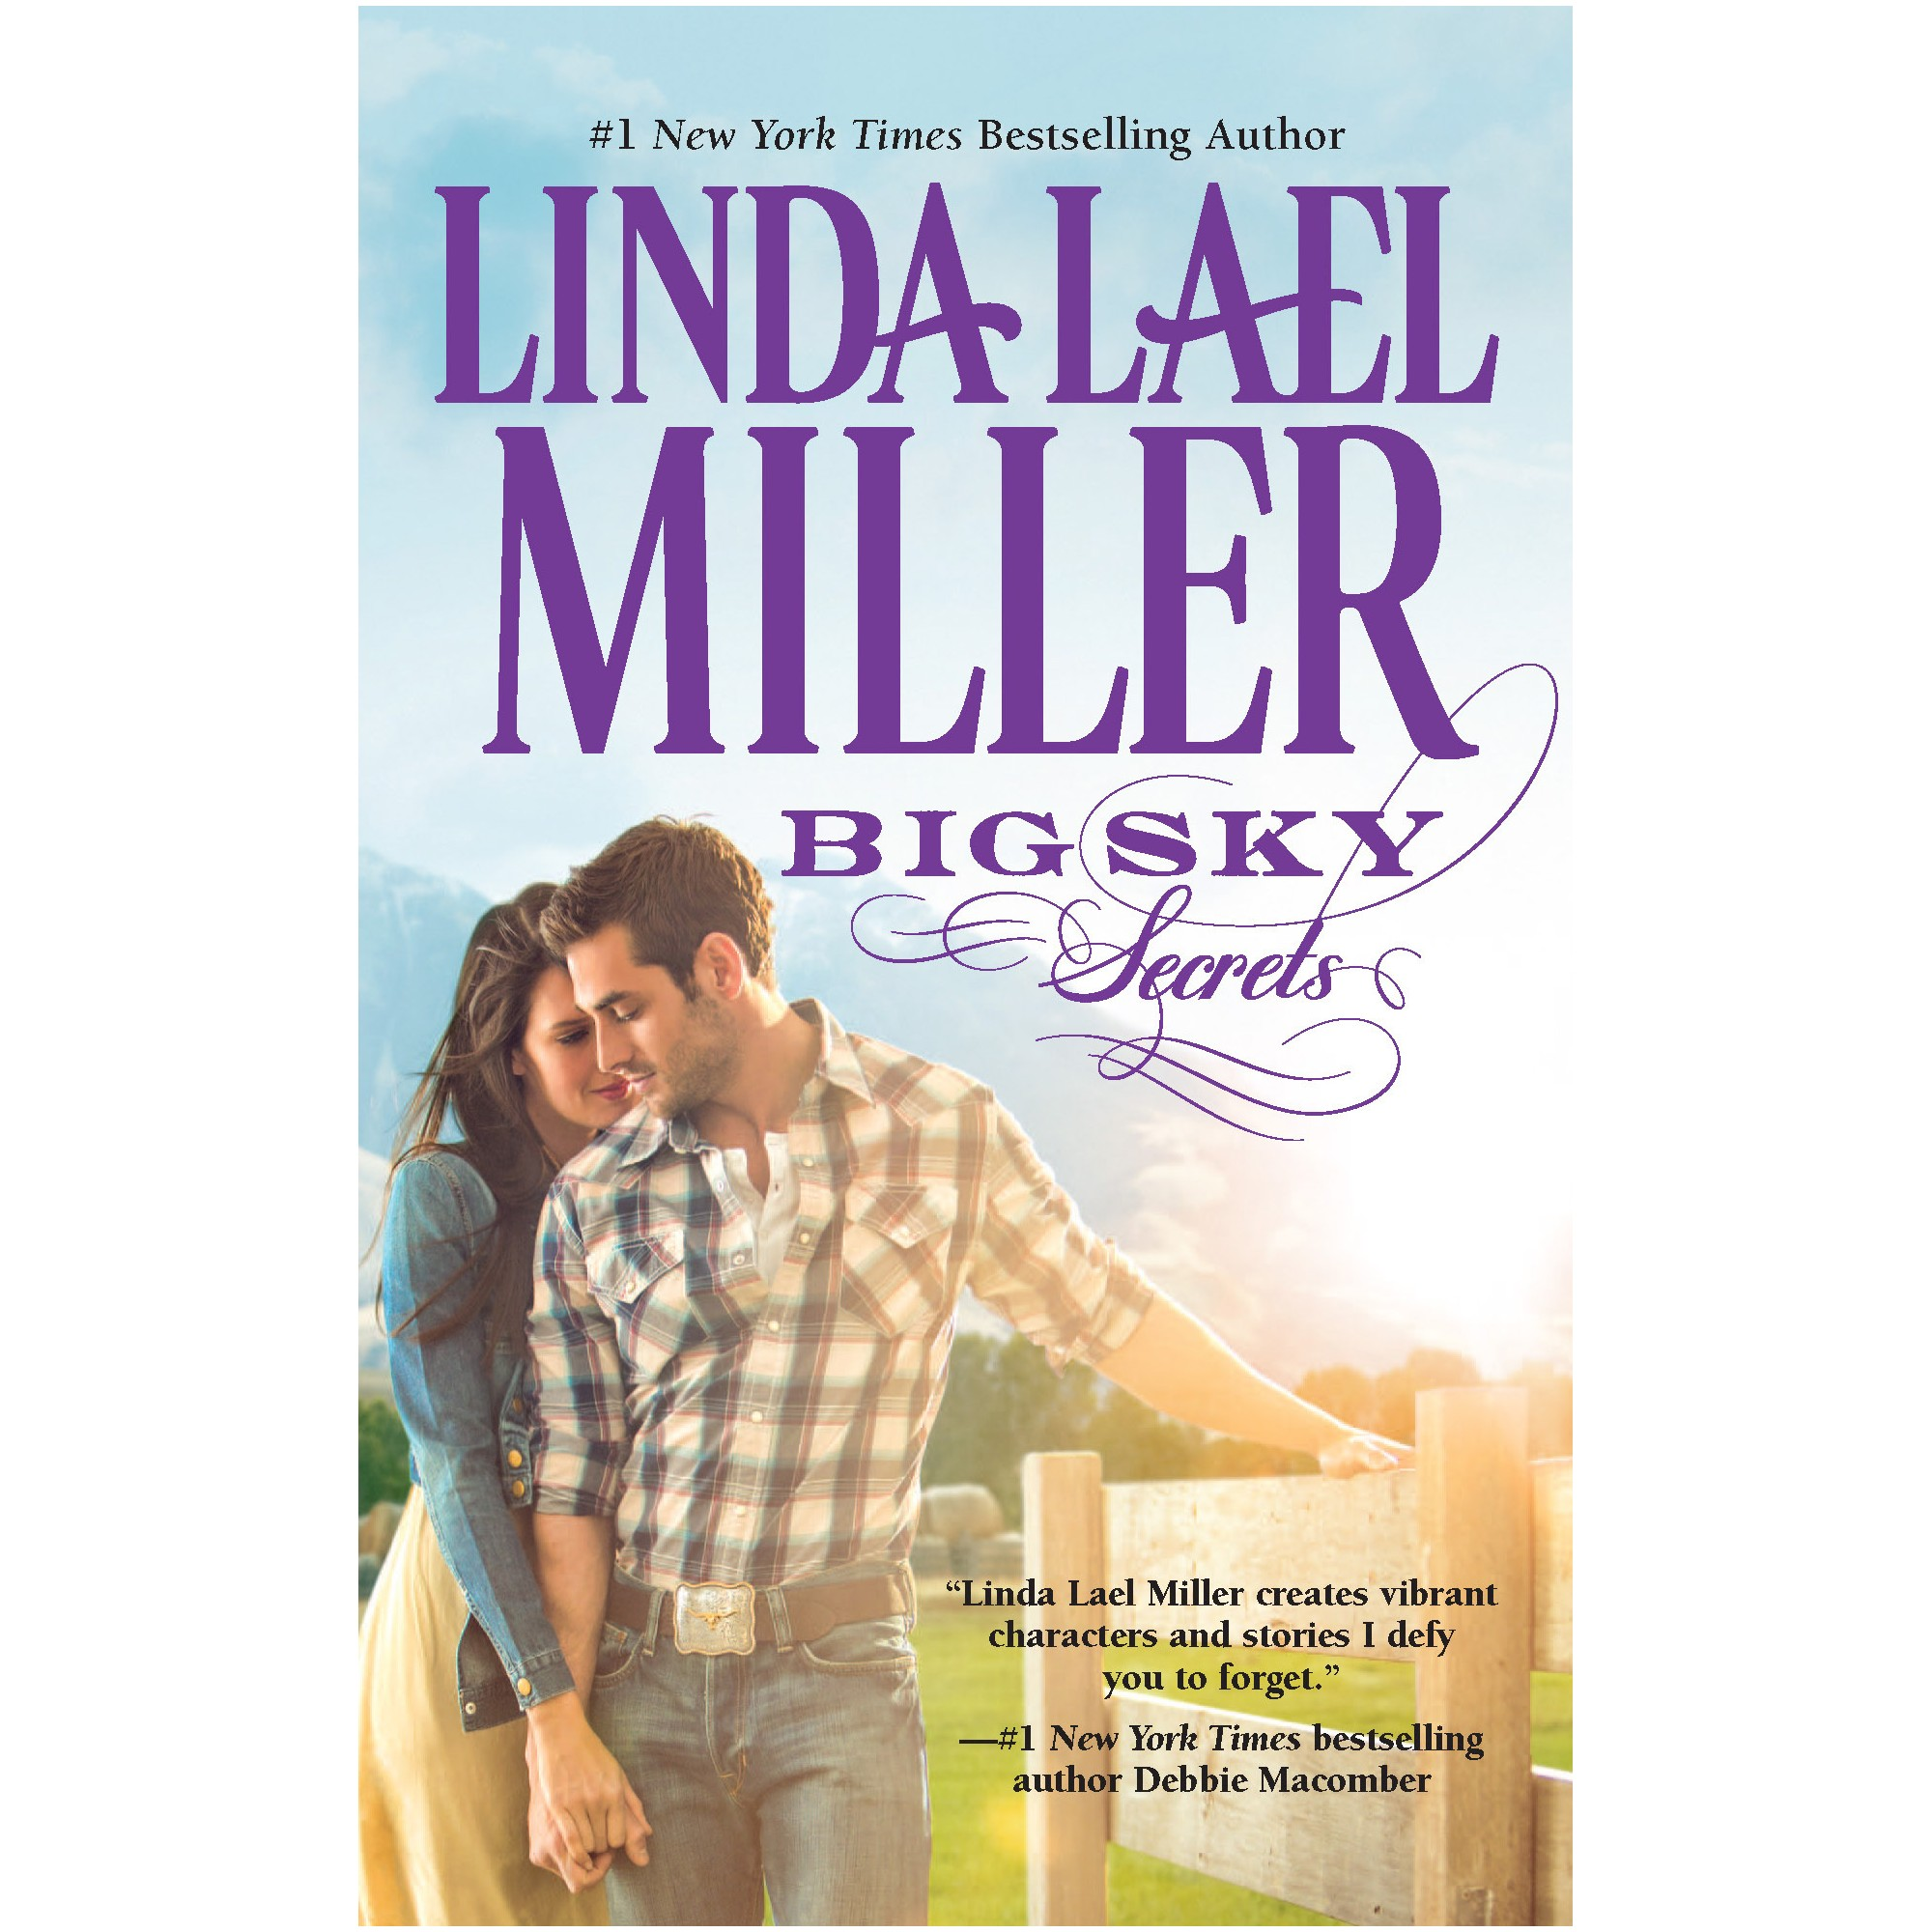 Big Sky Secrets Paperback By Linda Lael Miller The Secret Book